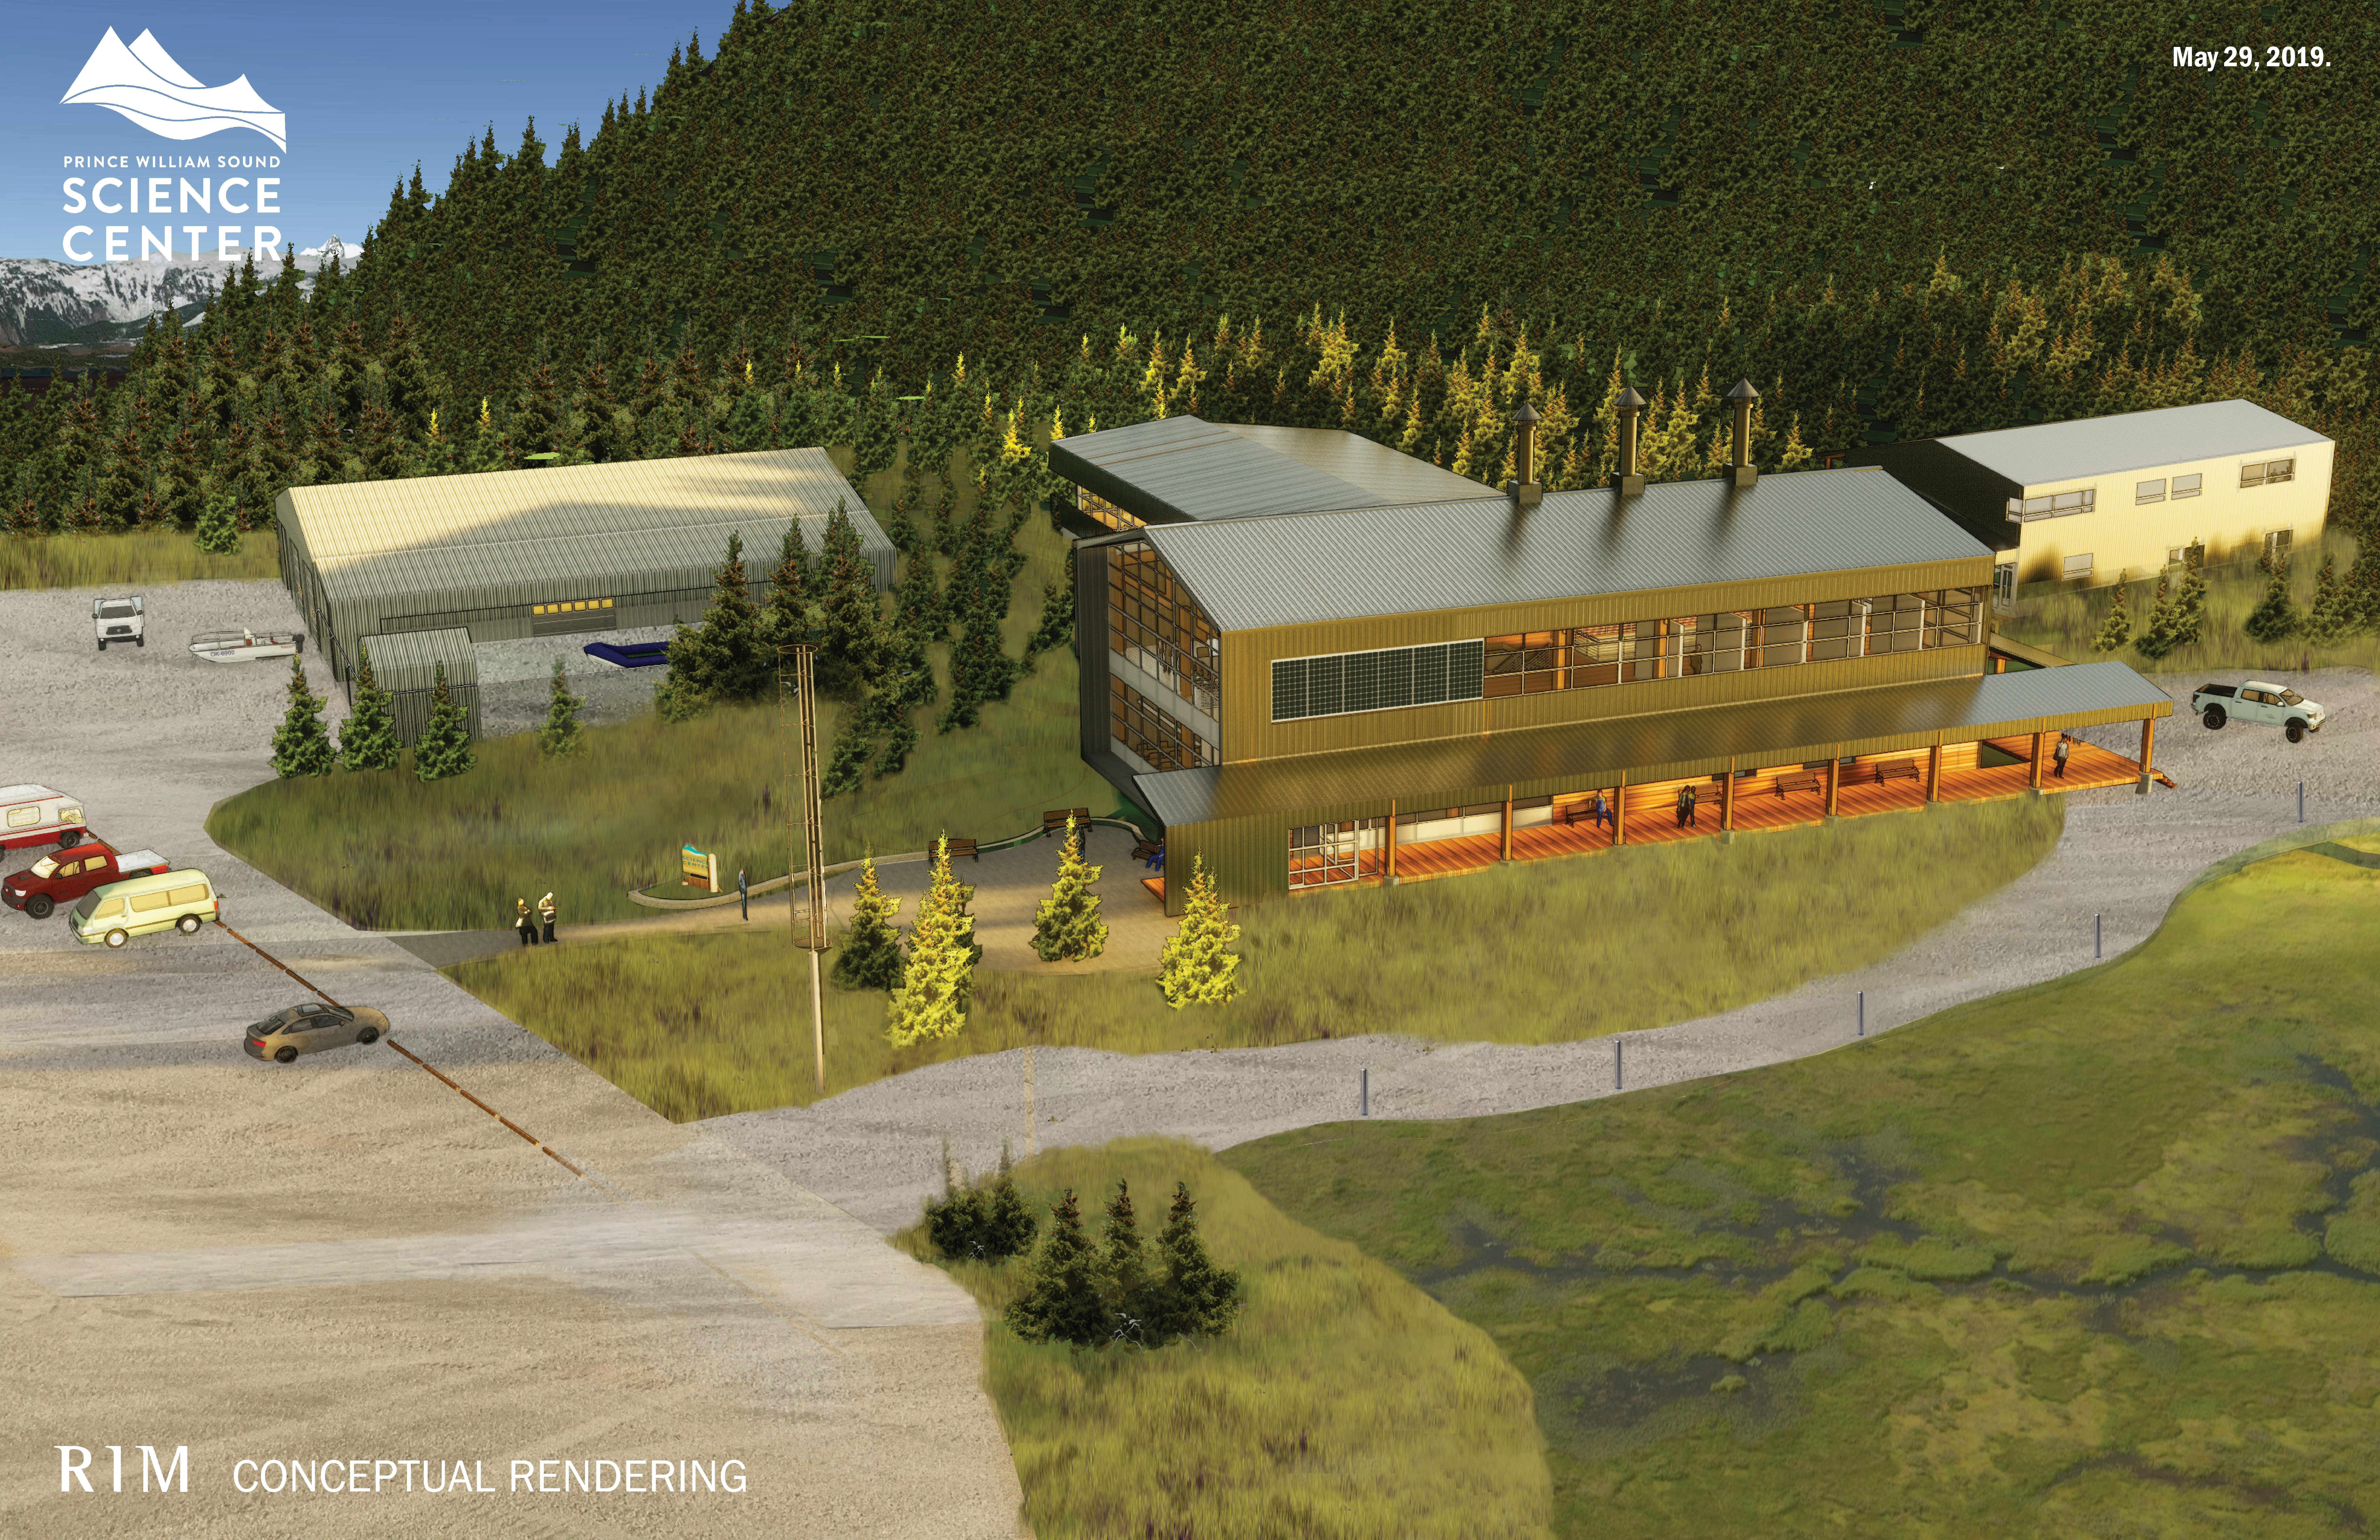 A preliminary conceptual rendering of Prince William Sound Science Center's new campus. (May 29, 2019) Image courtesy of Prince William Sound Science Center